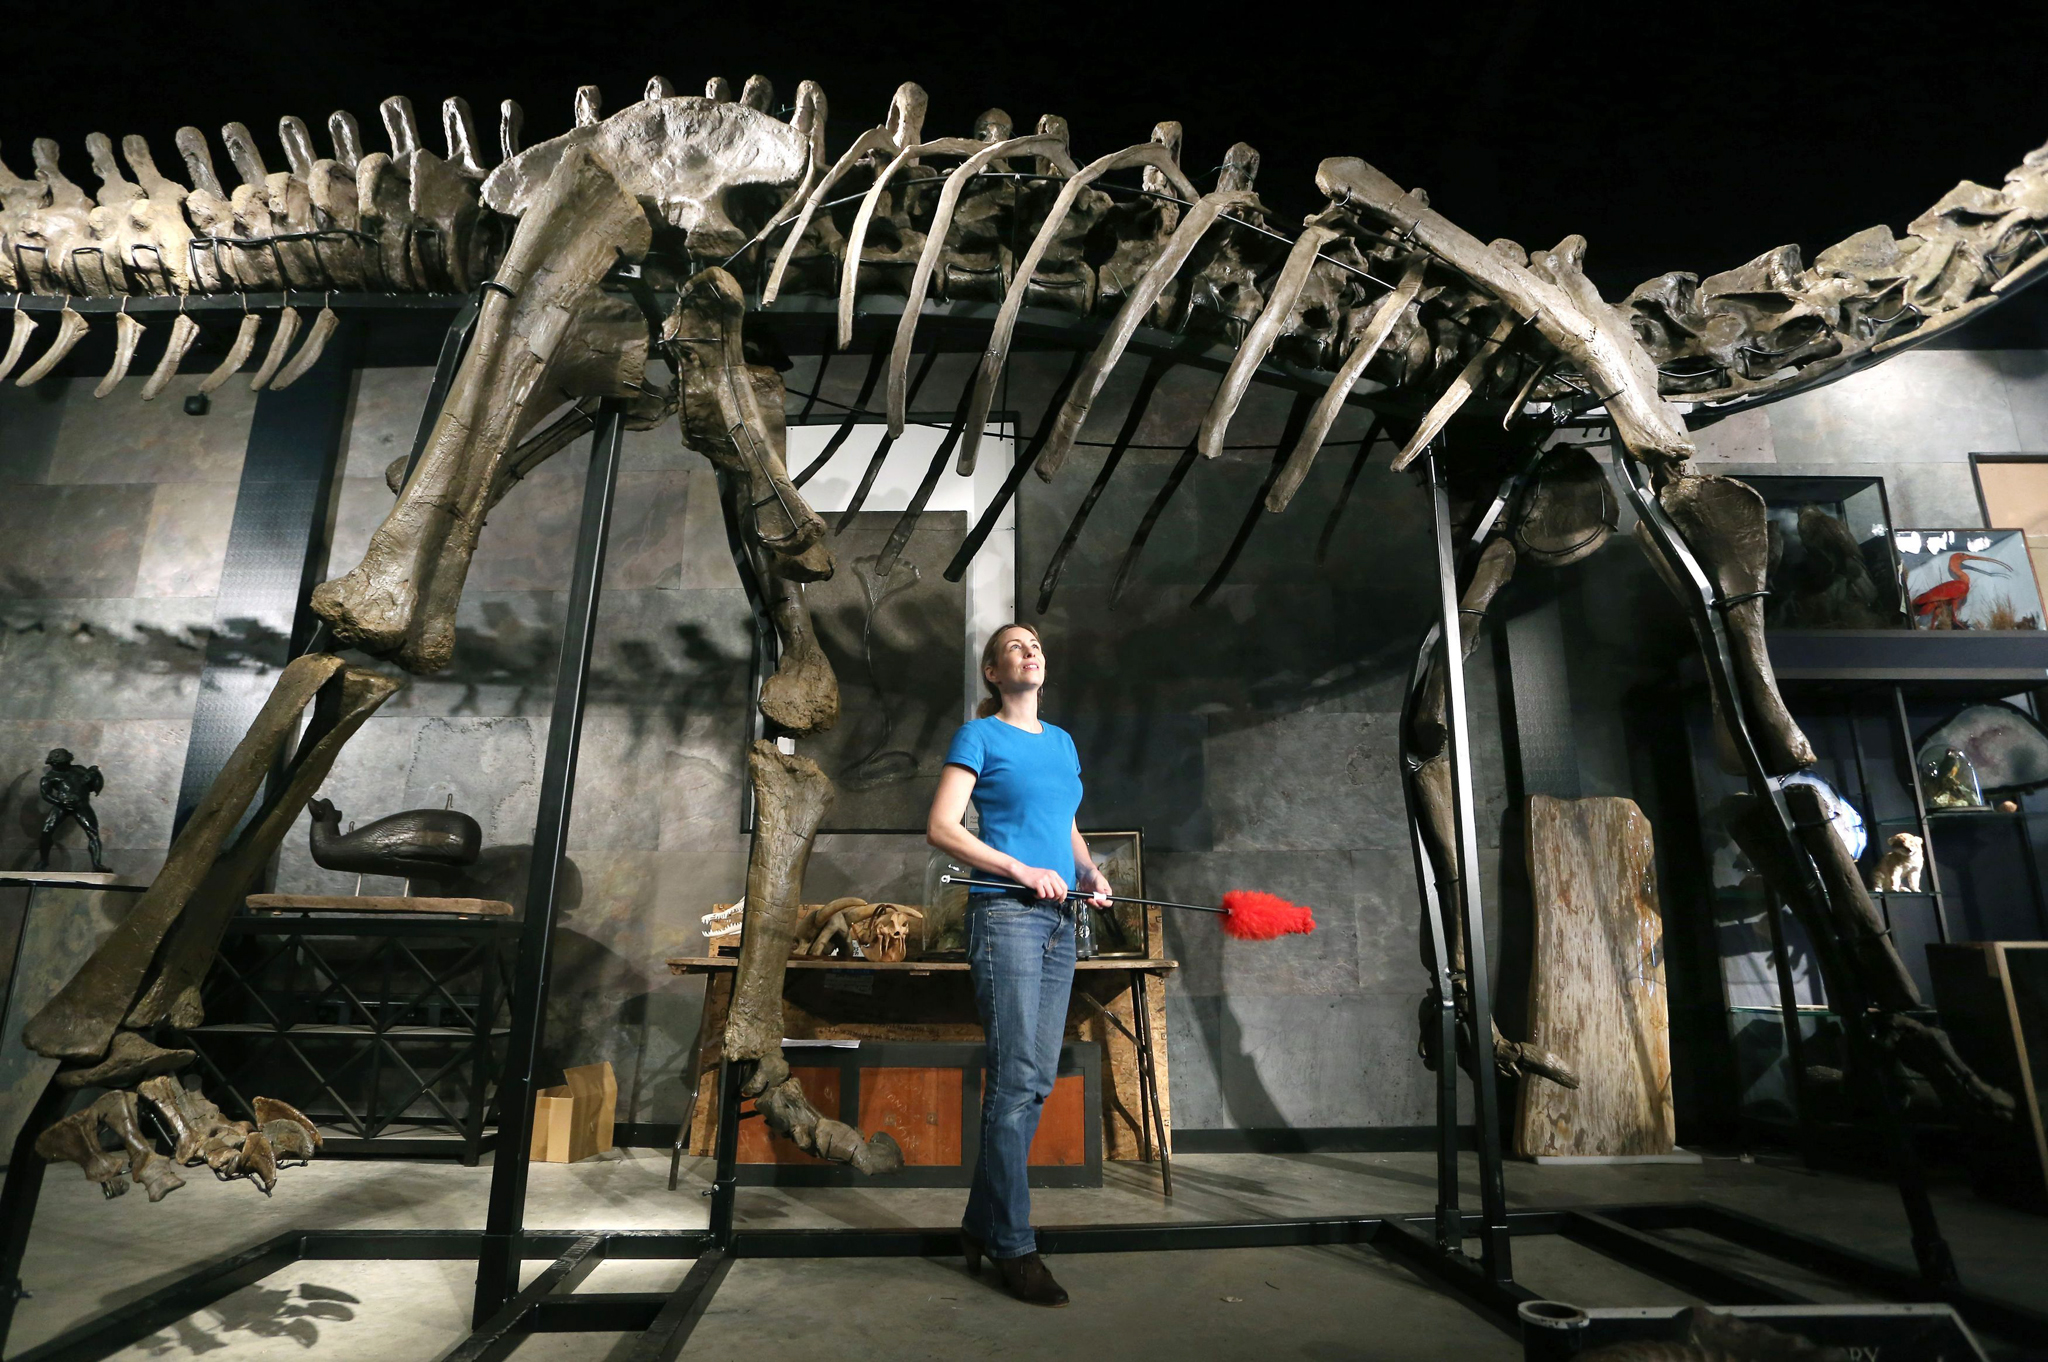 Dinosaur skeleton set for auction...Lindsay Hoadley of Summers Place Auctions in Billingshurst, West Sussex, tends to 17 metre long specimen of a long-necked Diplodocus Longus which will be auctioned next month and according to experts will be the first sale in the UK of a large dinosaur skeleton and is exptected to fetch up to £600,000. PRESS ASSOCIATION Photo. Picture date: Wednesday October 16, 2013. See PA story SALE Dinosaur. Photo credit should read: Gareth Fuller/PA Wire